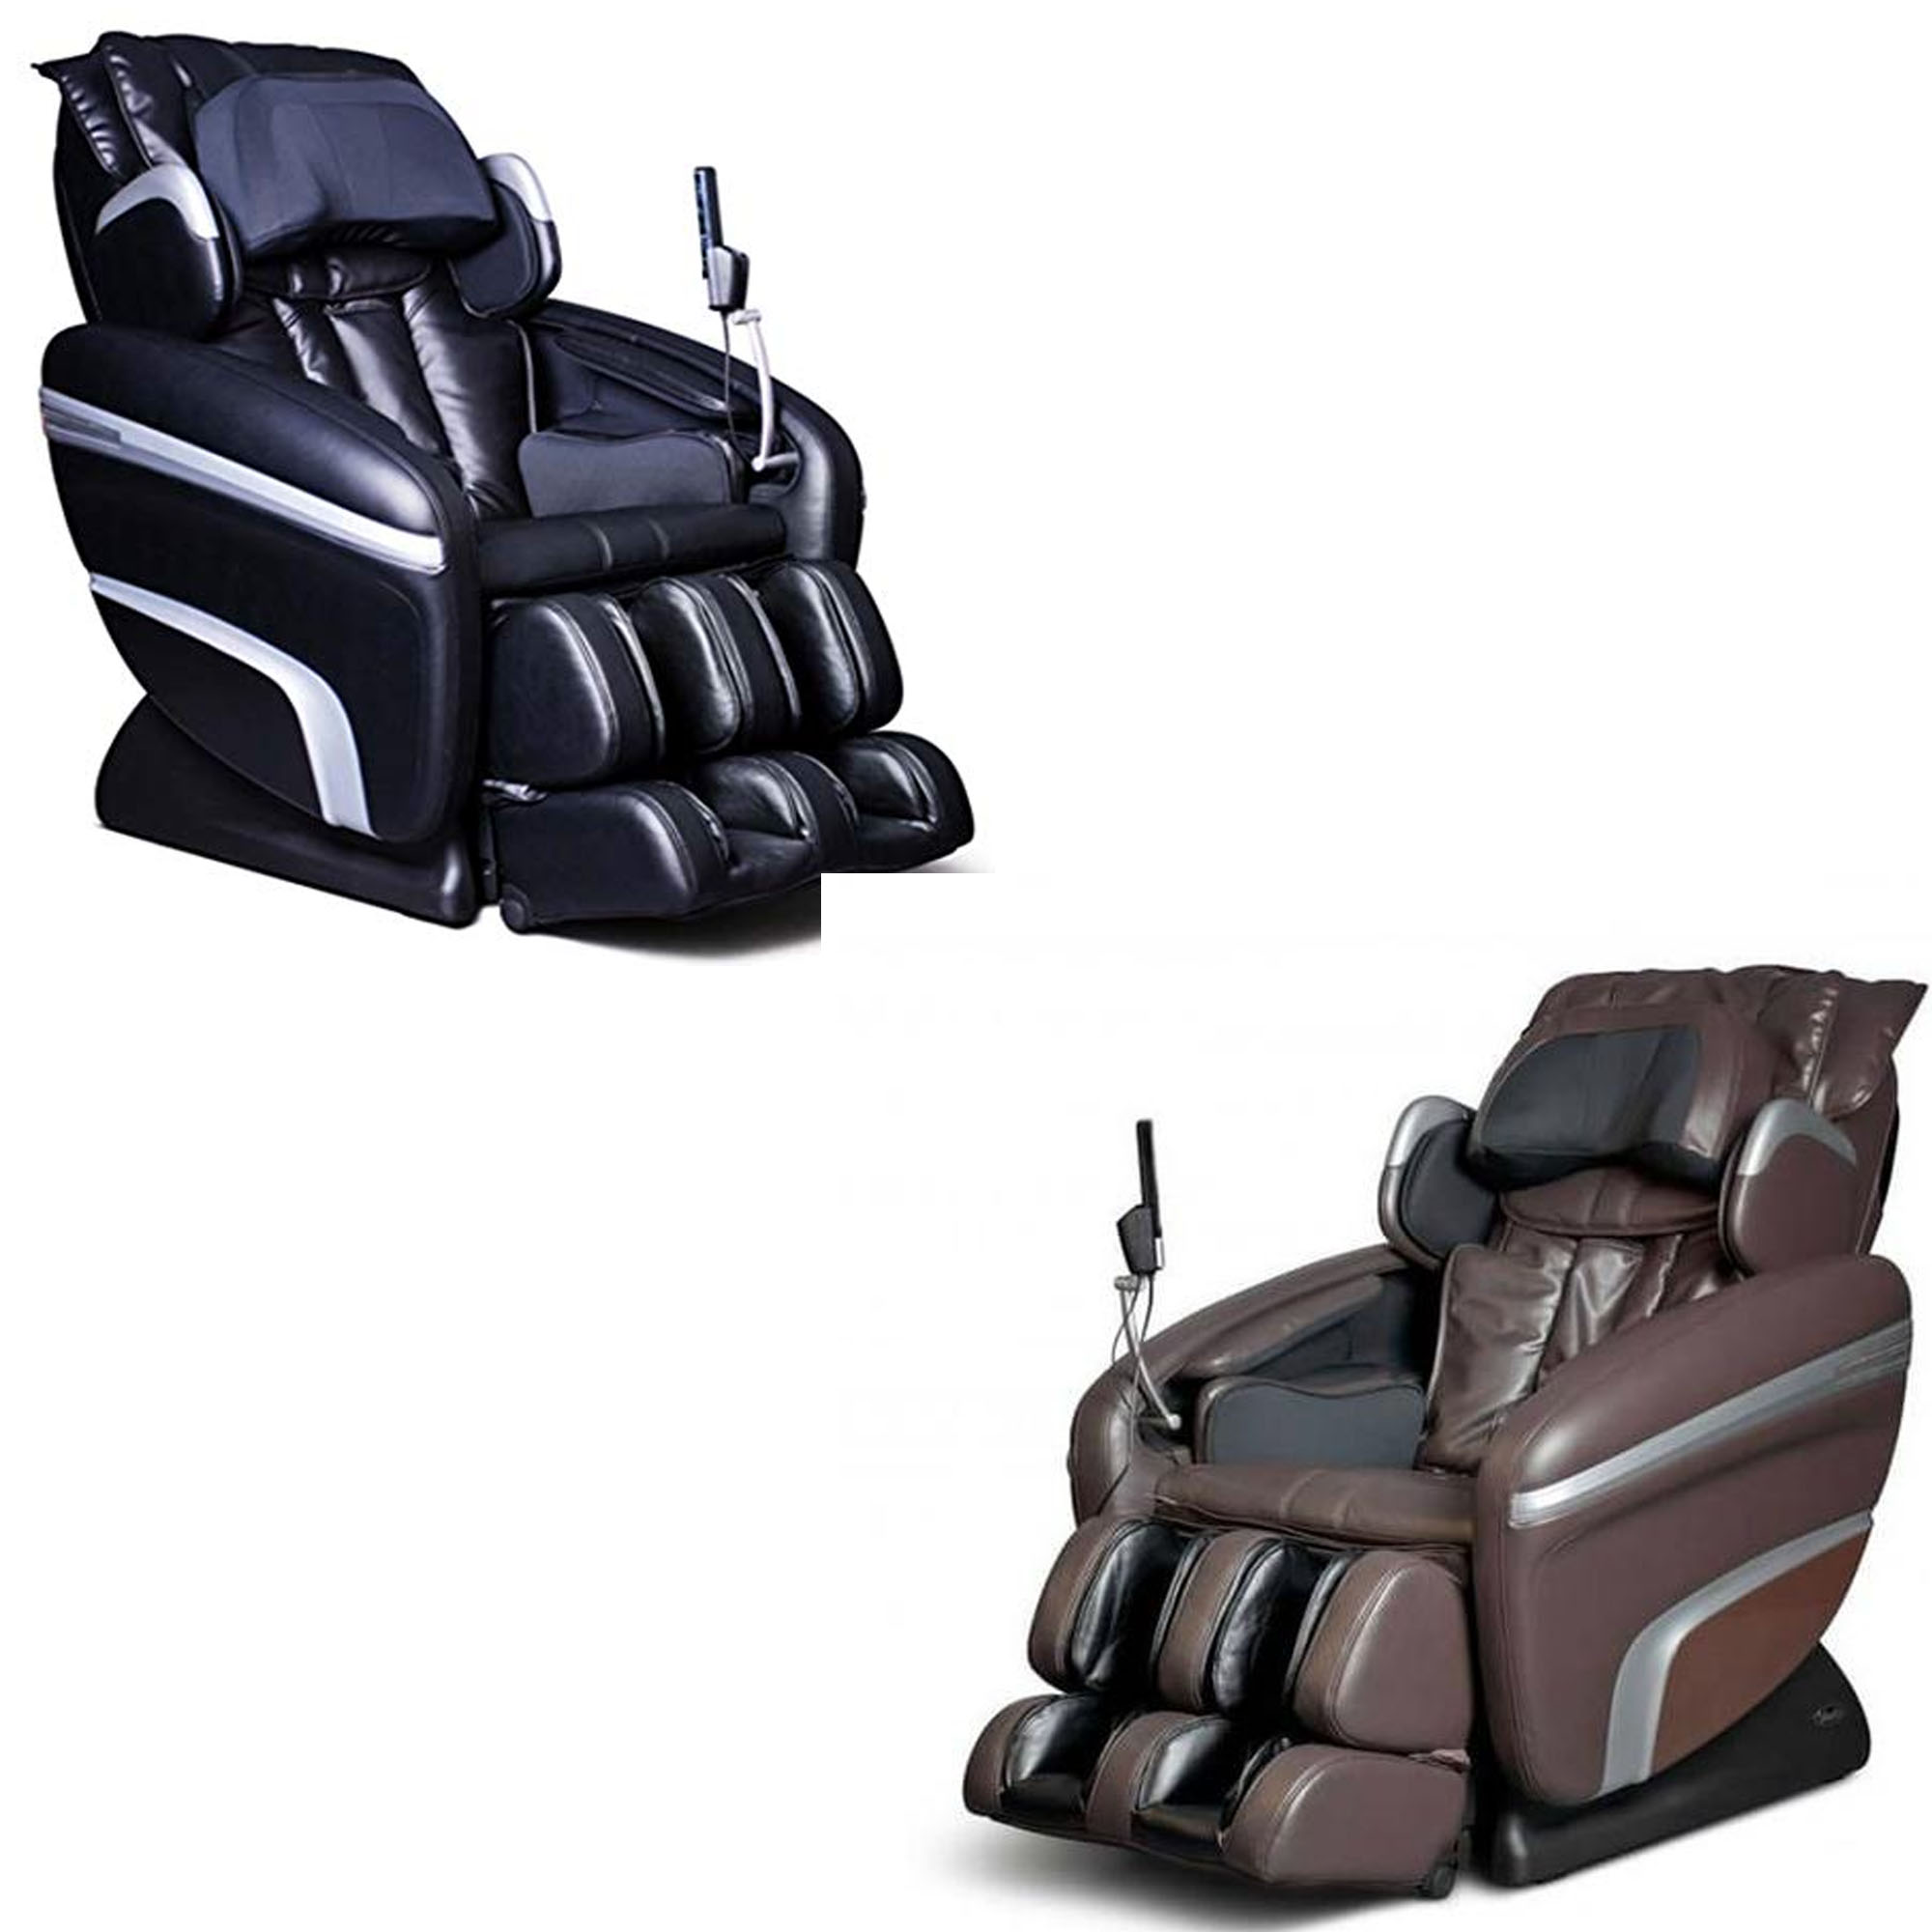 Osaki Massage Chairs Osaki Os 7200h Curve Deluxe Zero Gravity Massage Chair Available In Black Brown